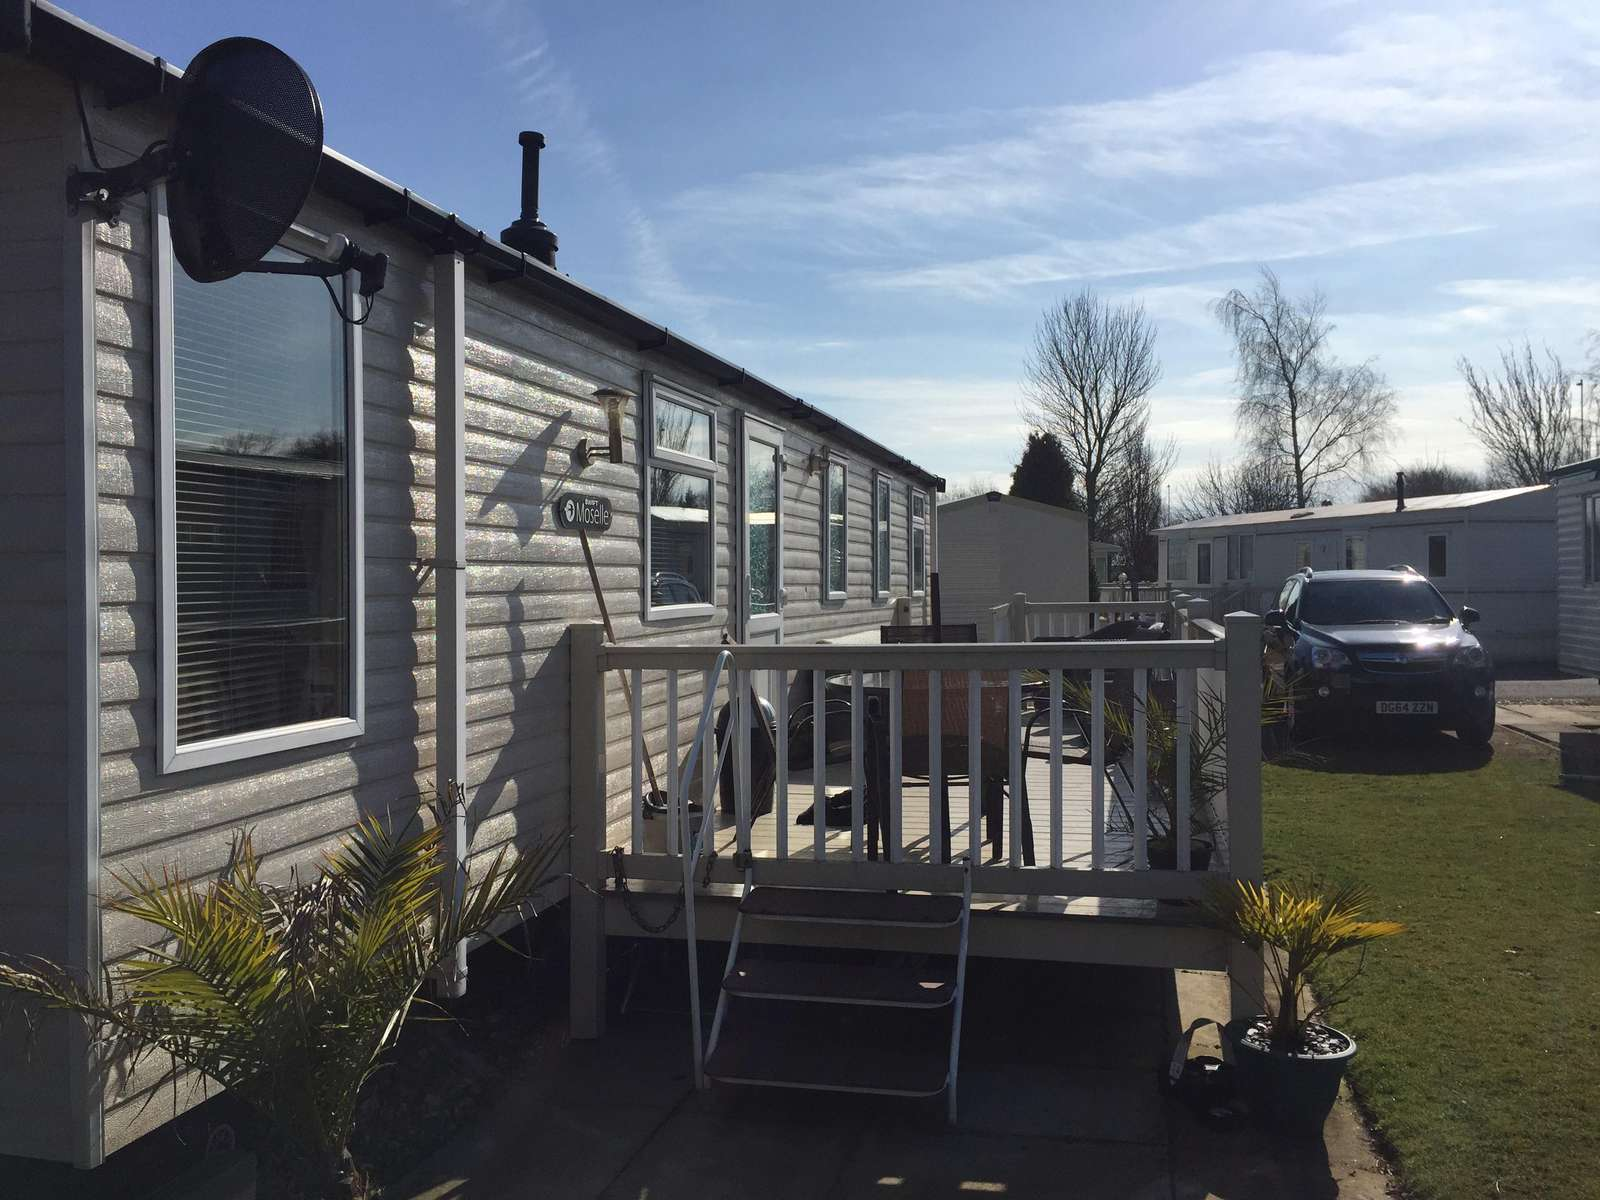 In a brilliant location only a short drive to the lovely seaside town of Skegness.